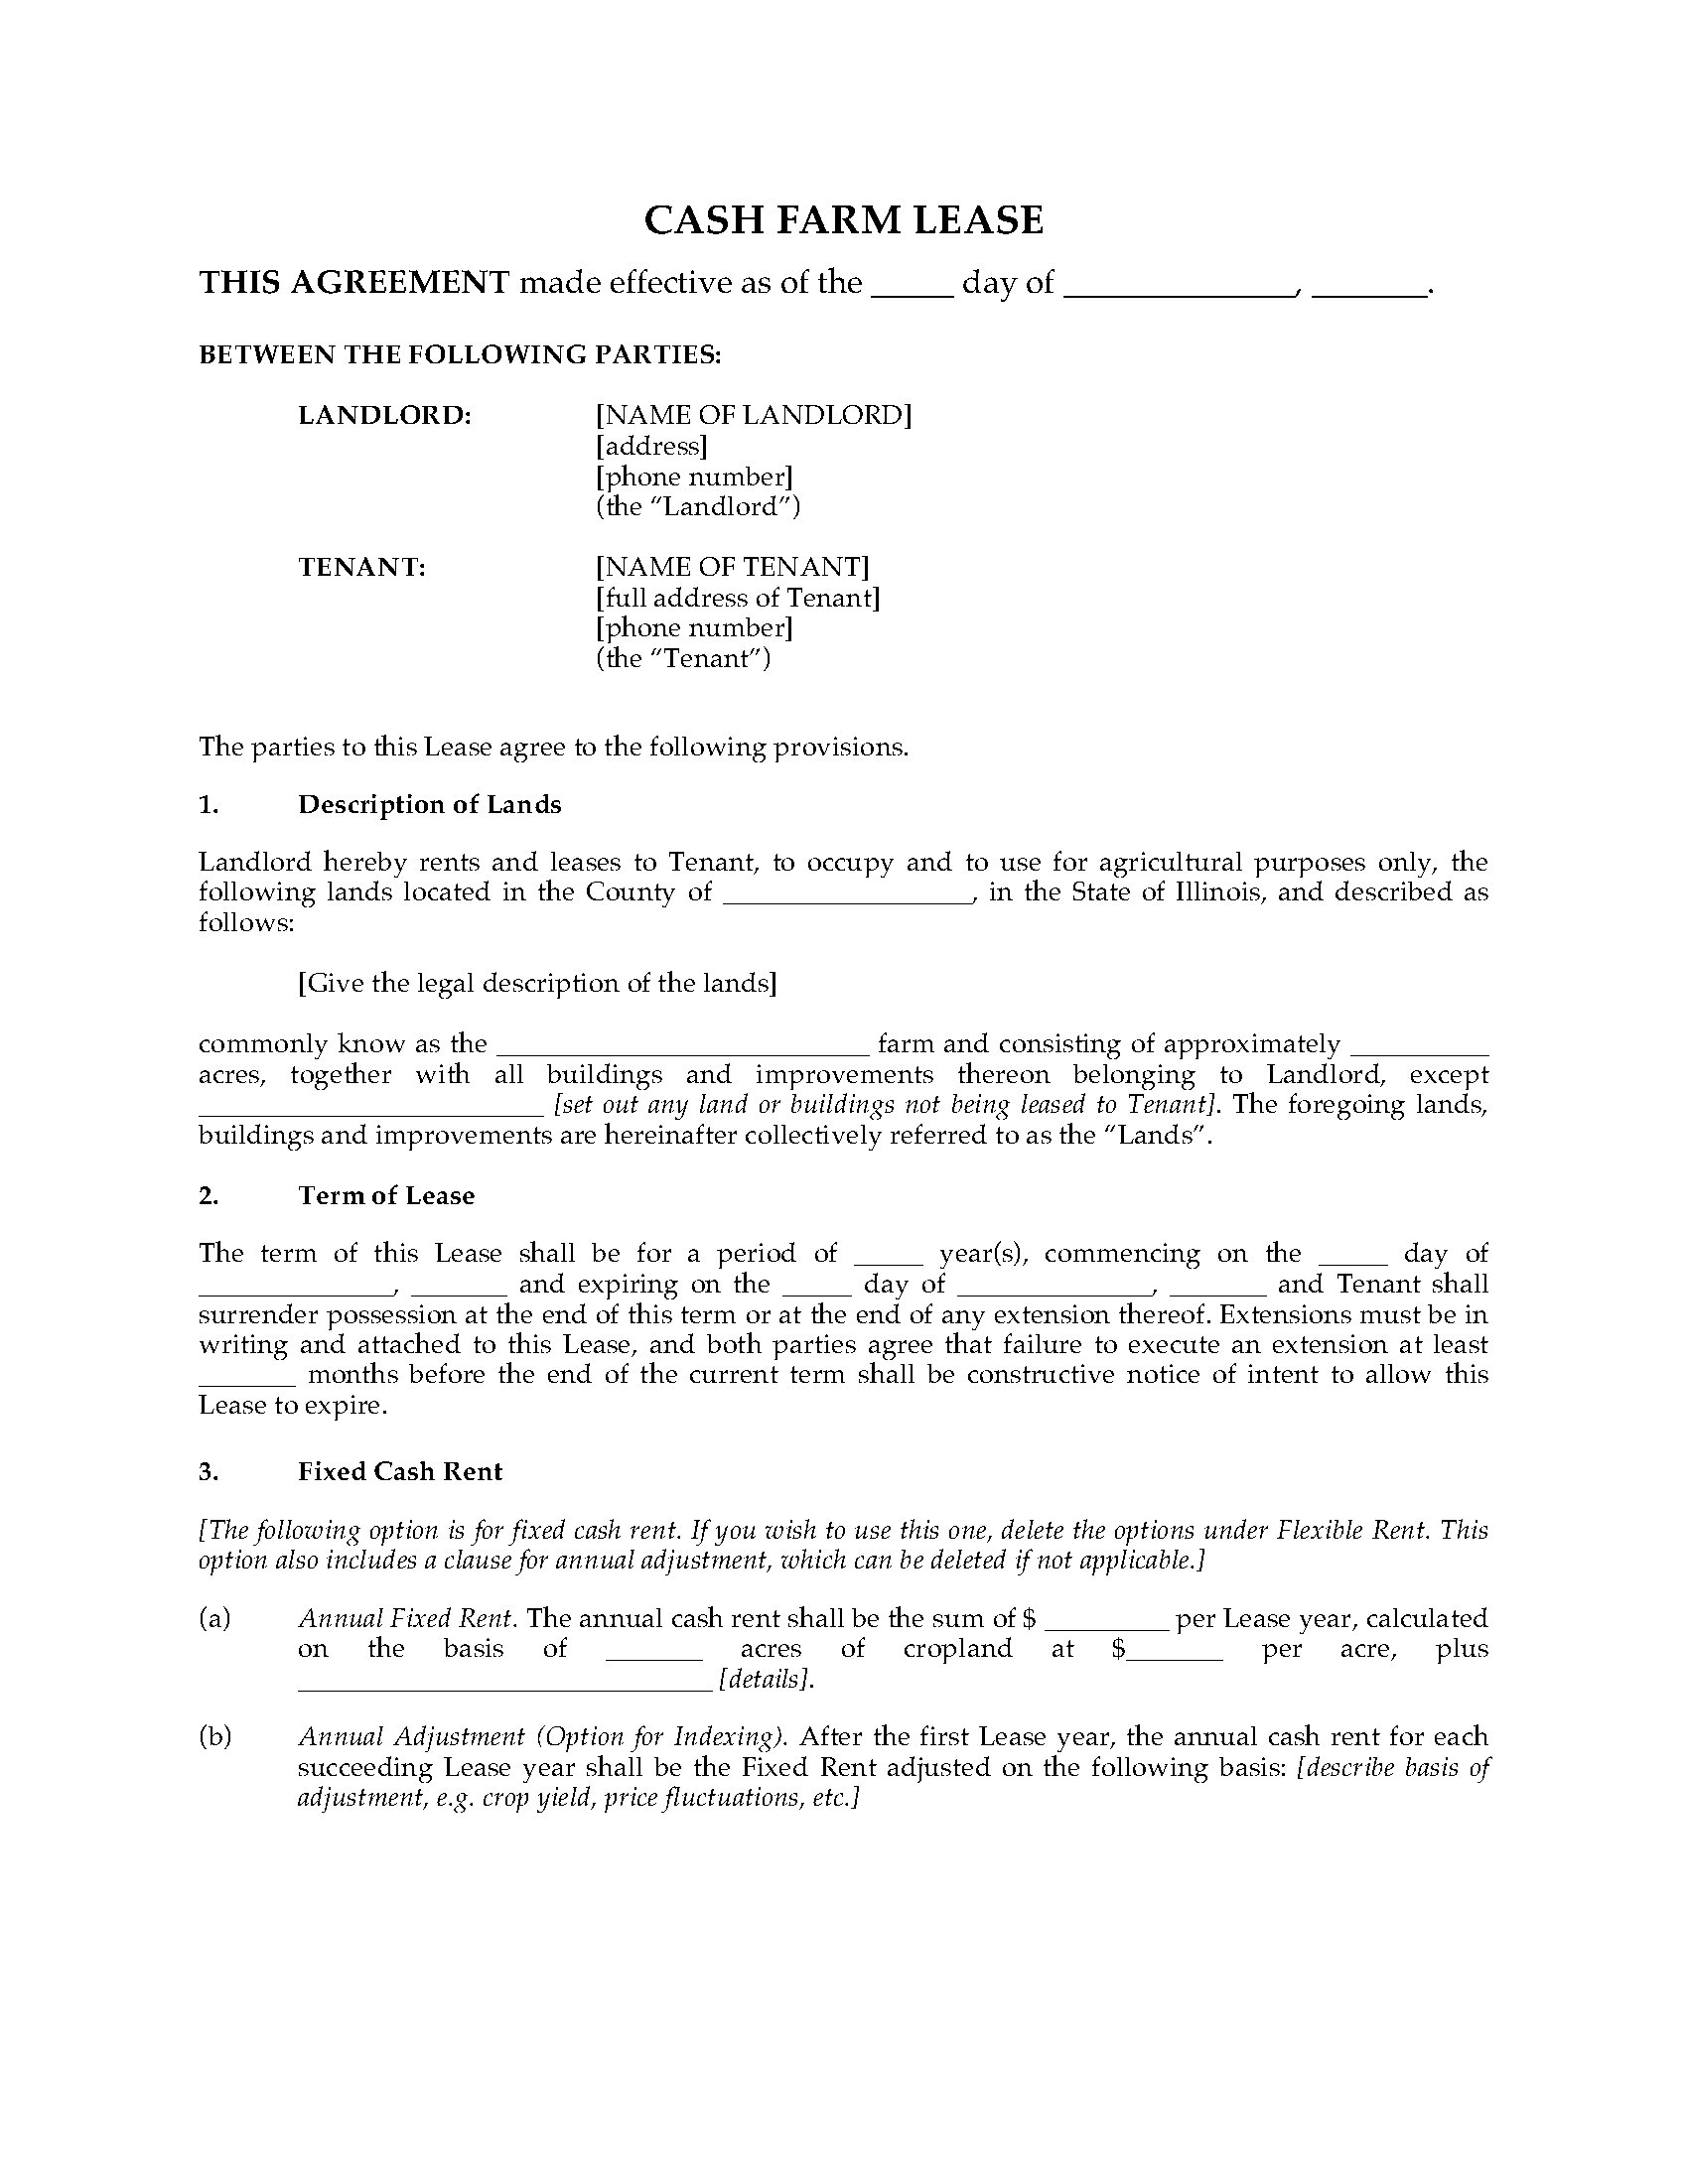 Illinois Cash Farm Lease Form